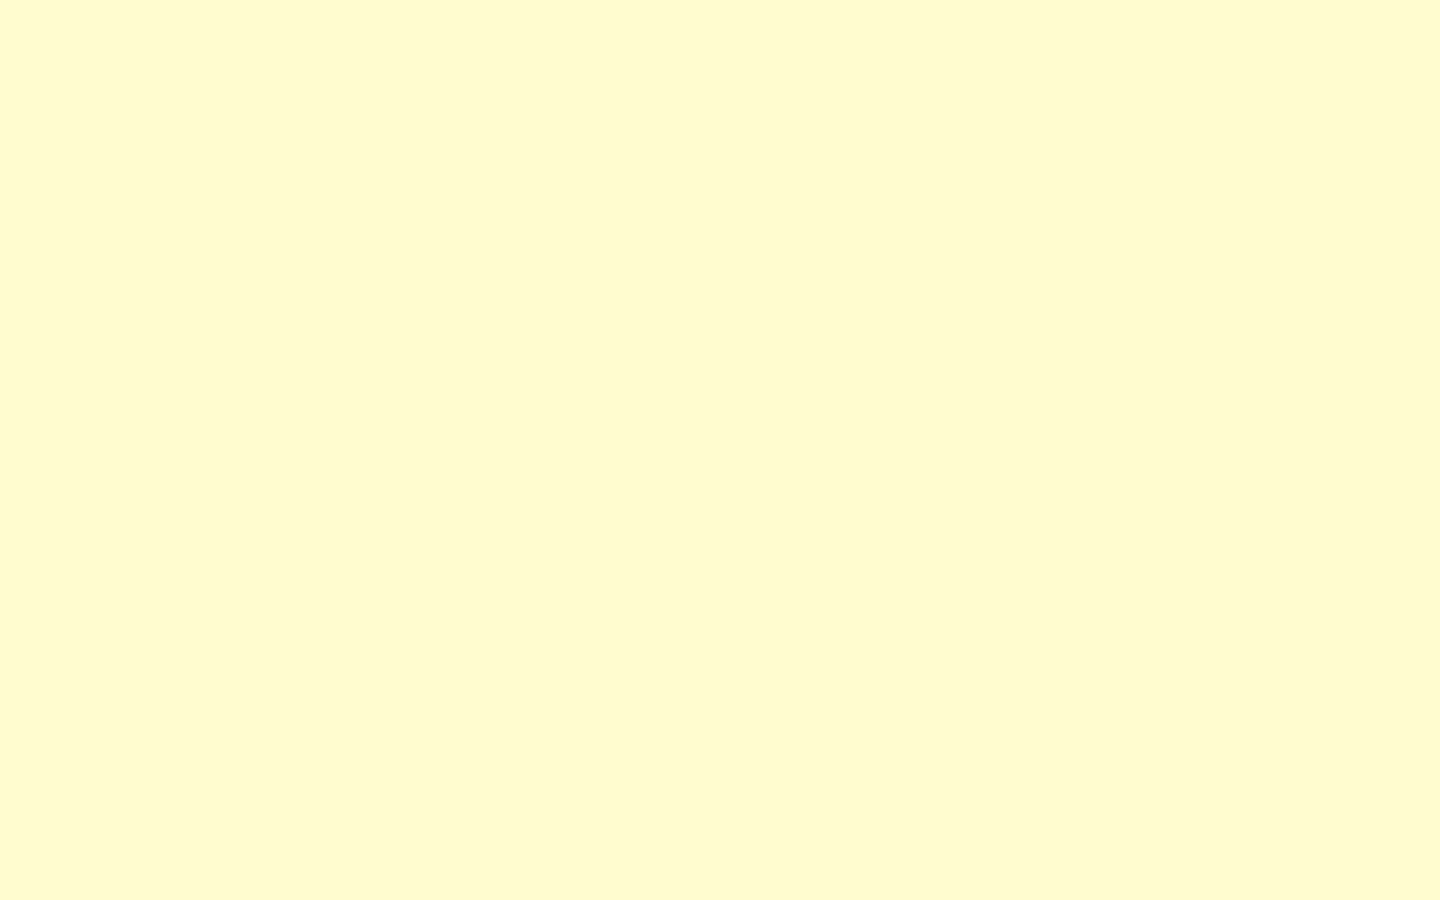 1440x900 Cream Solid Color Background